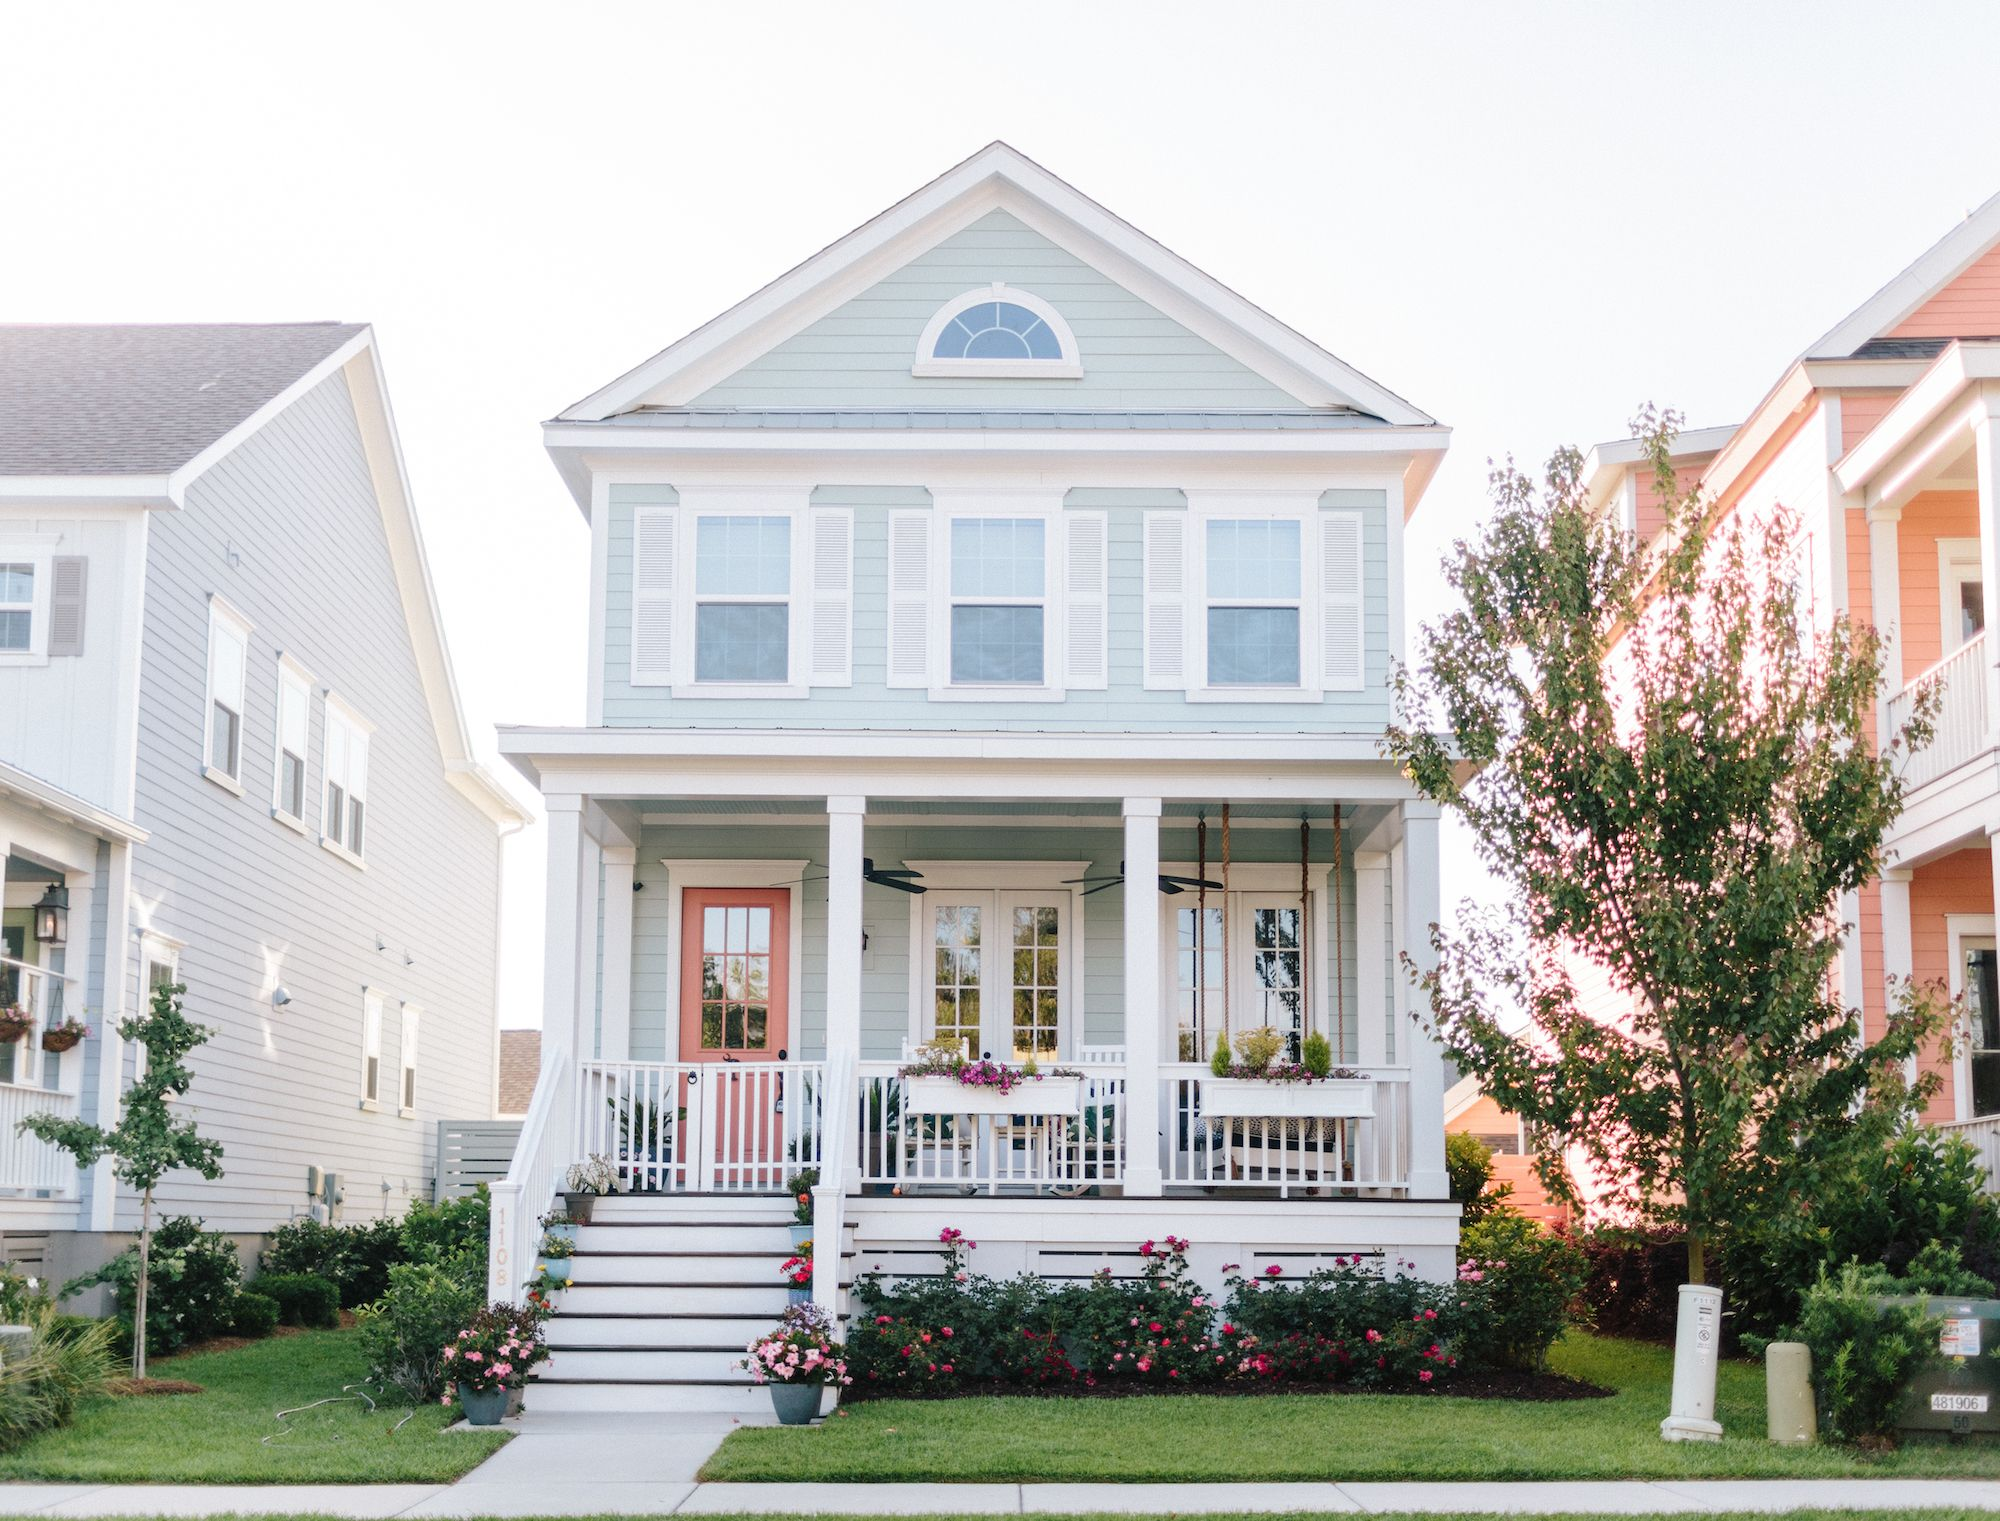 Charleston Home Exterior Paint Colors Charleston Homes Exterior Paint Exterior Paint Colors